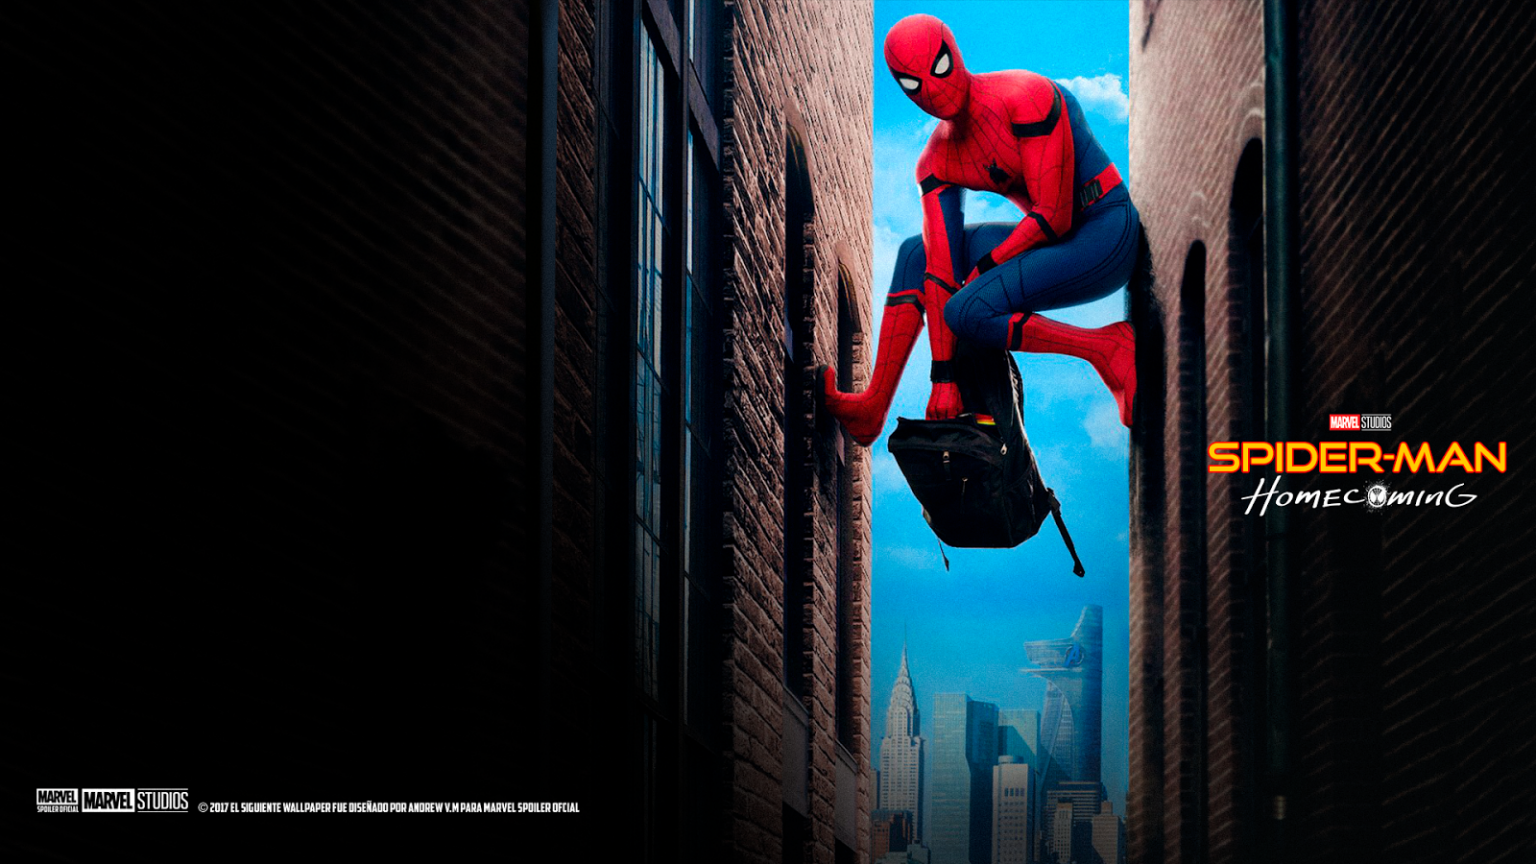 Spiderman Homecoming Wallpaper Marvel Spoiler Oficial Nuevos Wallpapers De Spider Man 1600x900